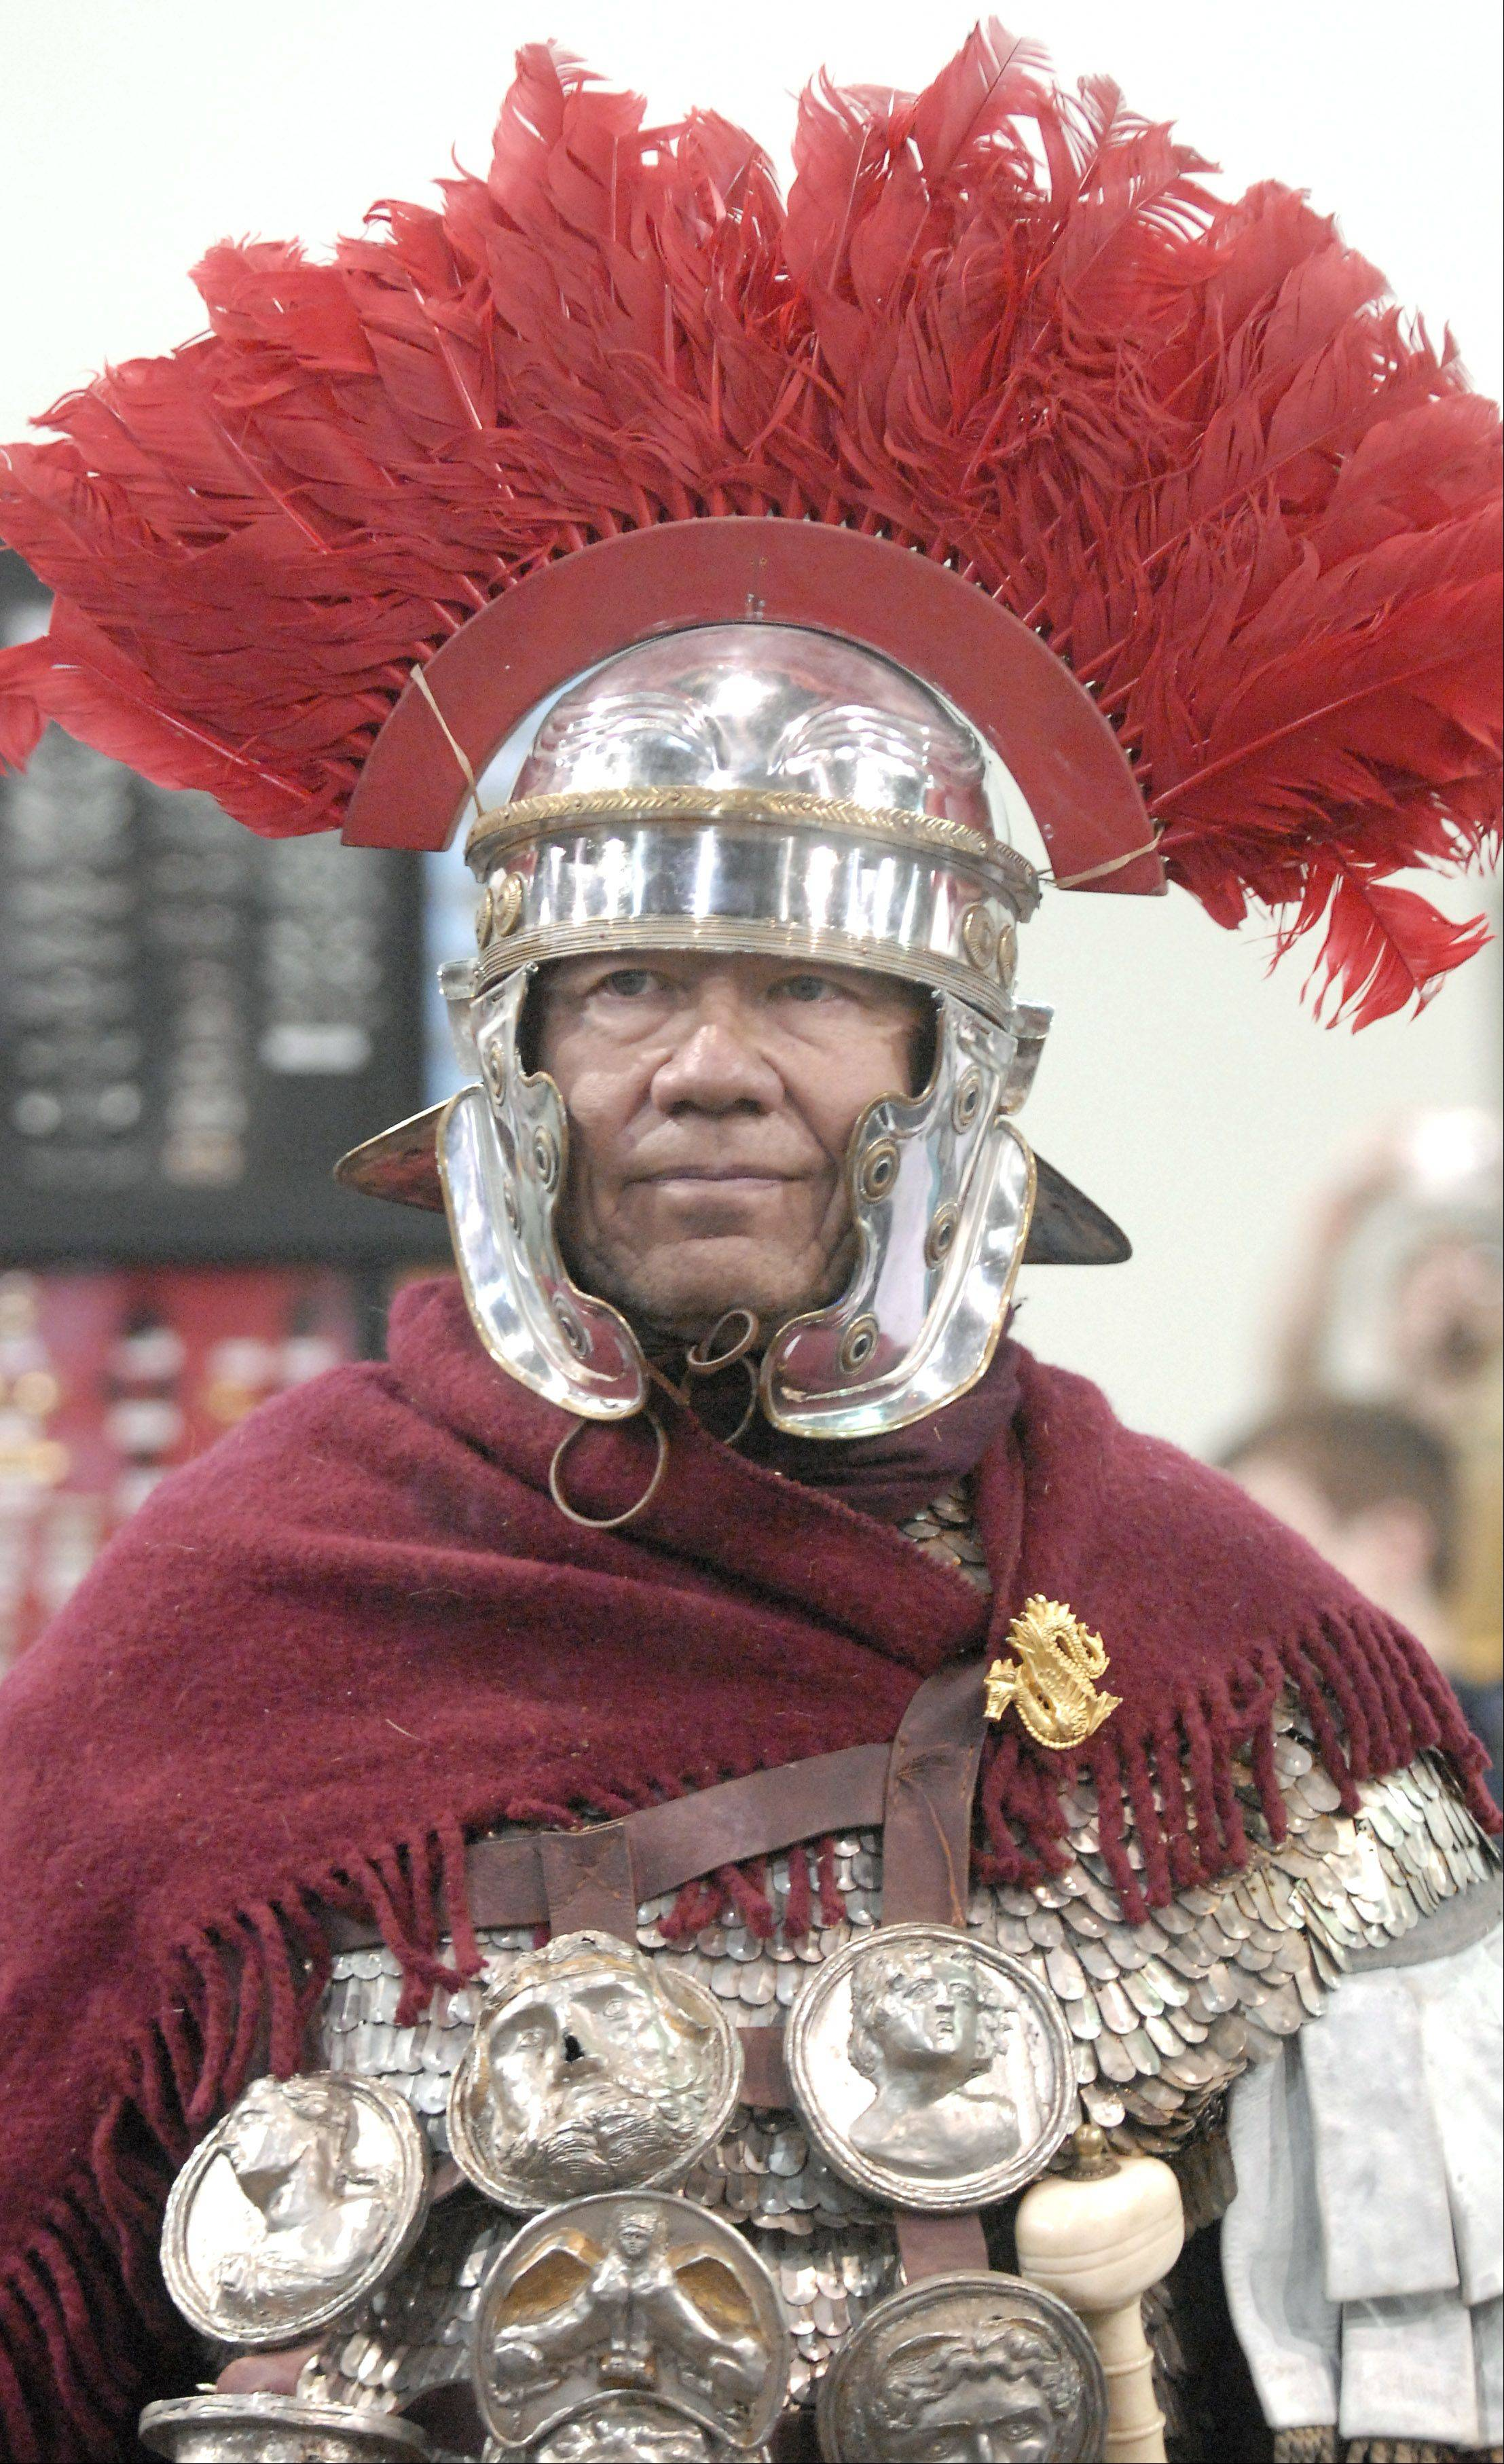 "Dan Peterson of Fort Campbell, Ky., wears Roman-style military gear, all of which he made himself, at last year's Military History Fest in St. Charles. Peterson wrote a book about the Roman military 20 years ago titled ""The Roman Legions."" He has been re-enacting this time period for 30 years. He is also the director of the Pratt Museum in Fort Campbell."